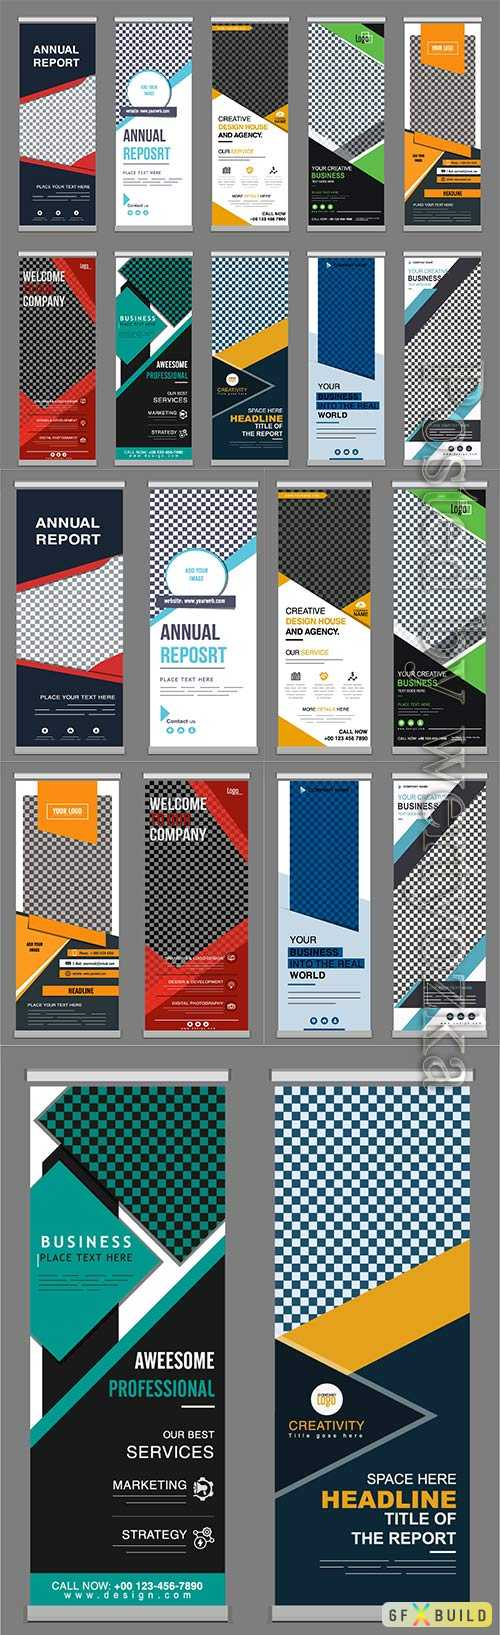 Standee business banner modern, elegant templates  checkered geometry